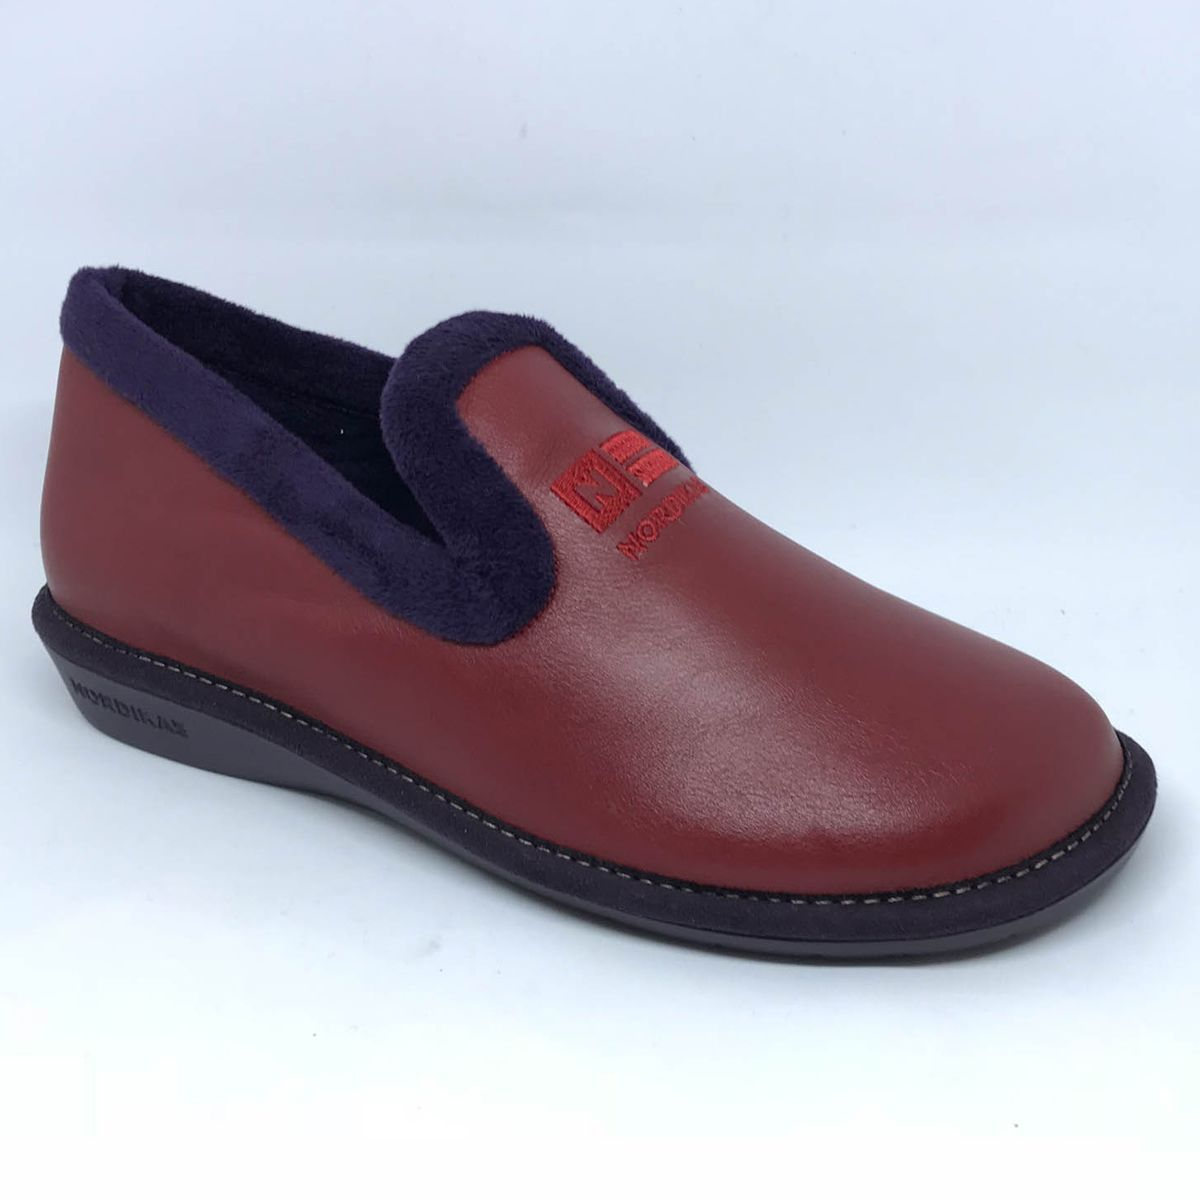 45556e2b94e4f Nordikas Slippers - Red leather - 305 4 TABACKIN